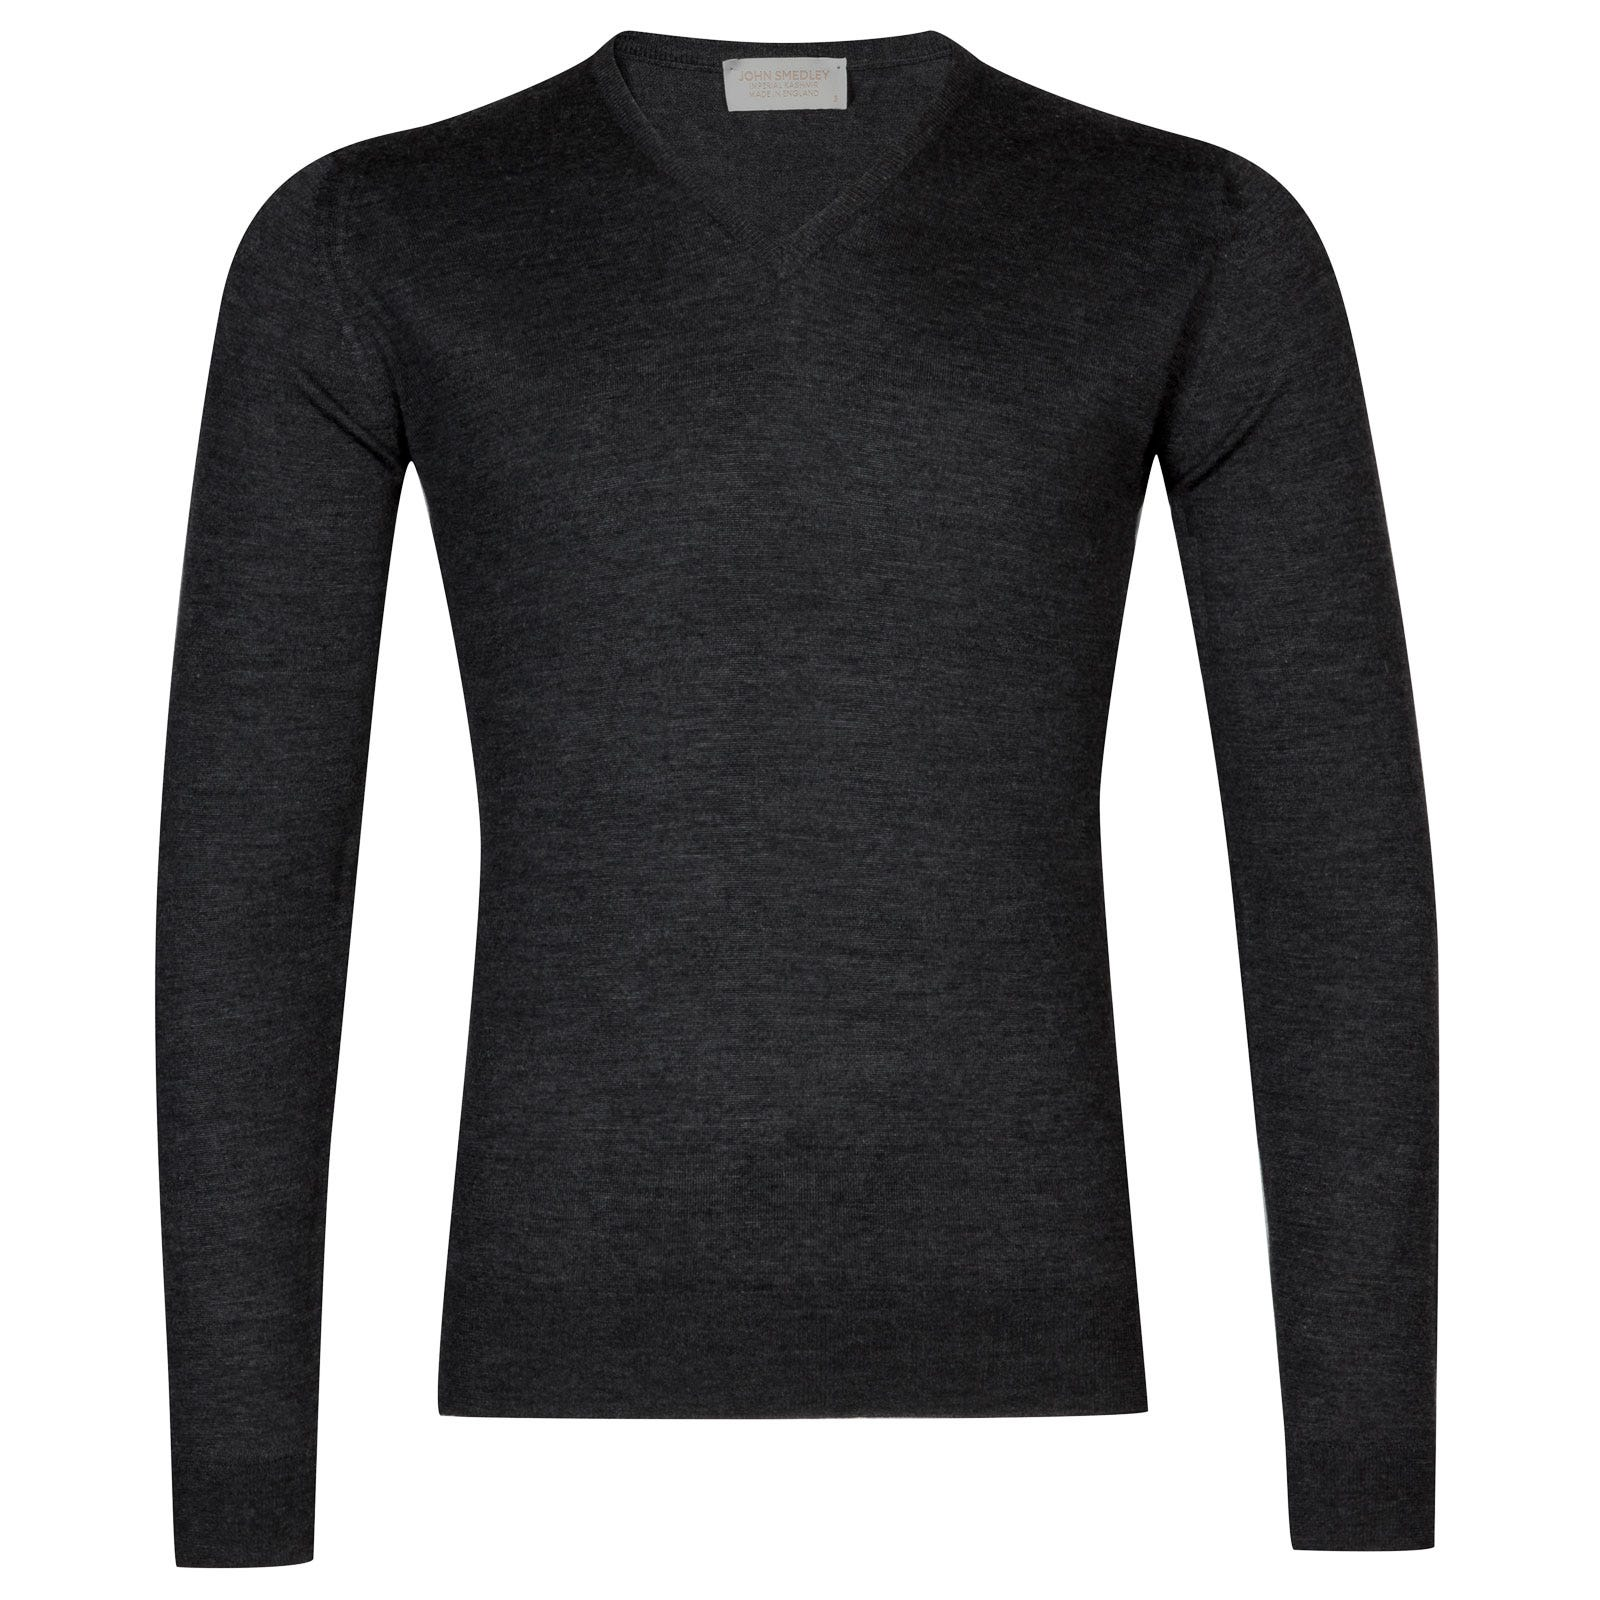 John Smedley newark Merino Wool and Cashmere Pullover in Charcoal-L